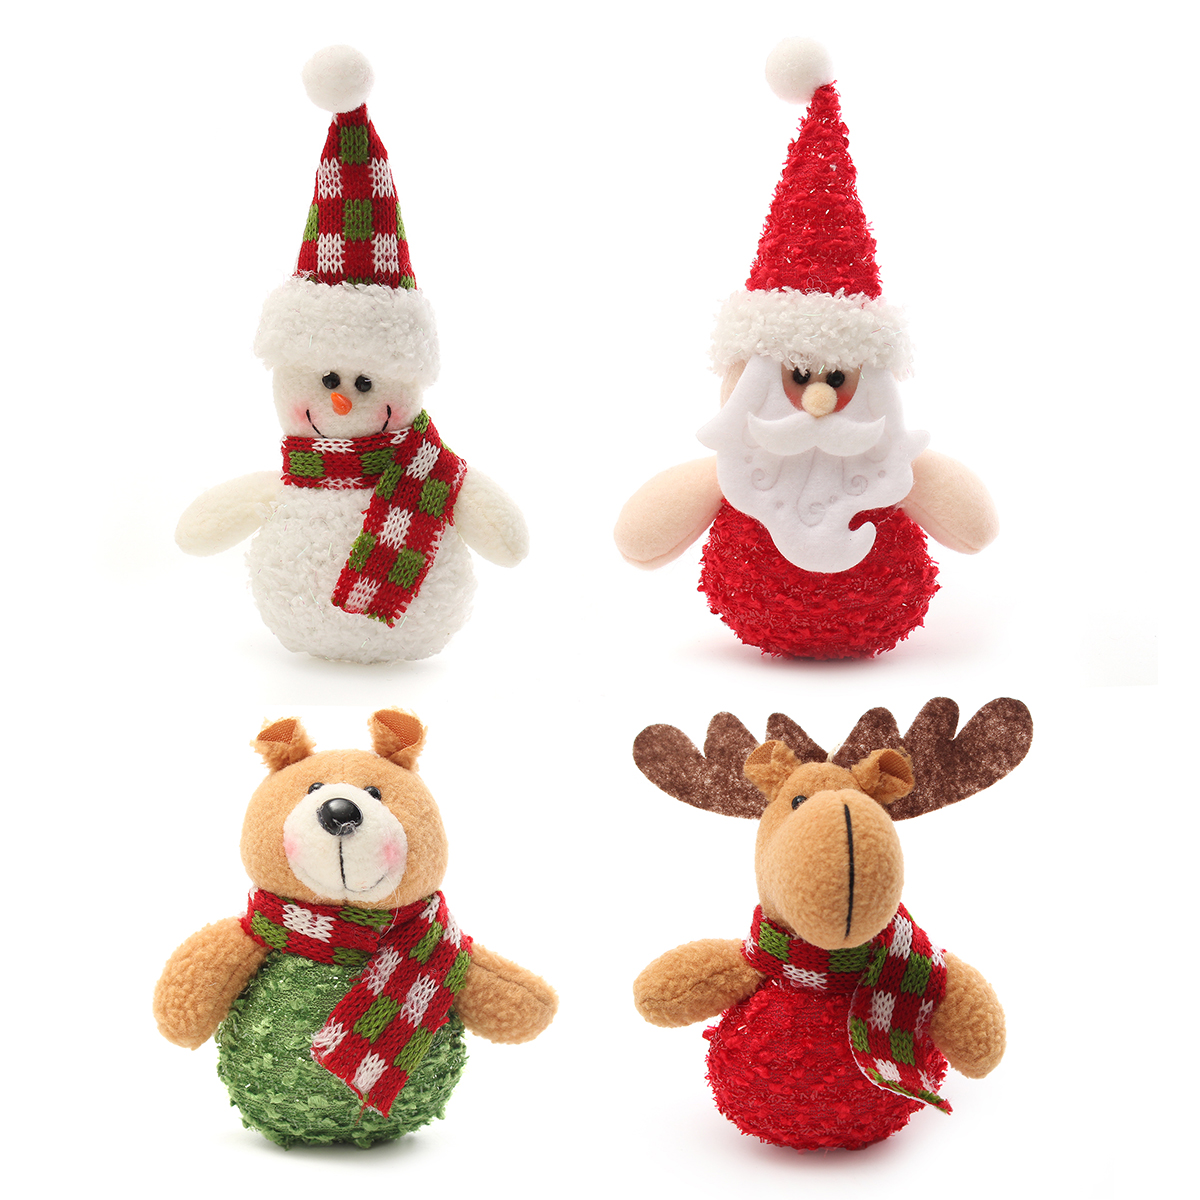 Christmas Haning Dolls Ornaments Snowman Reindeer Santa Claus Bear Xmas Decor - Photo: 9